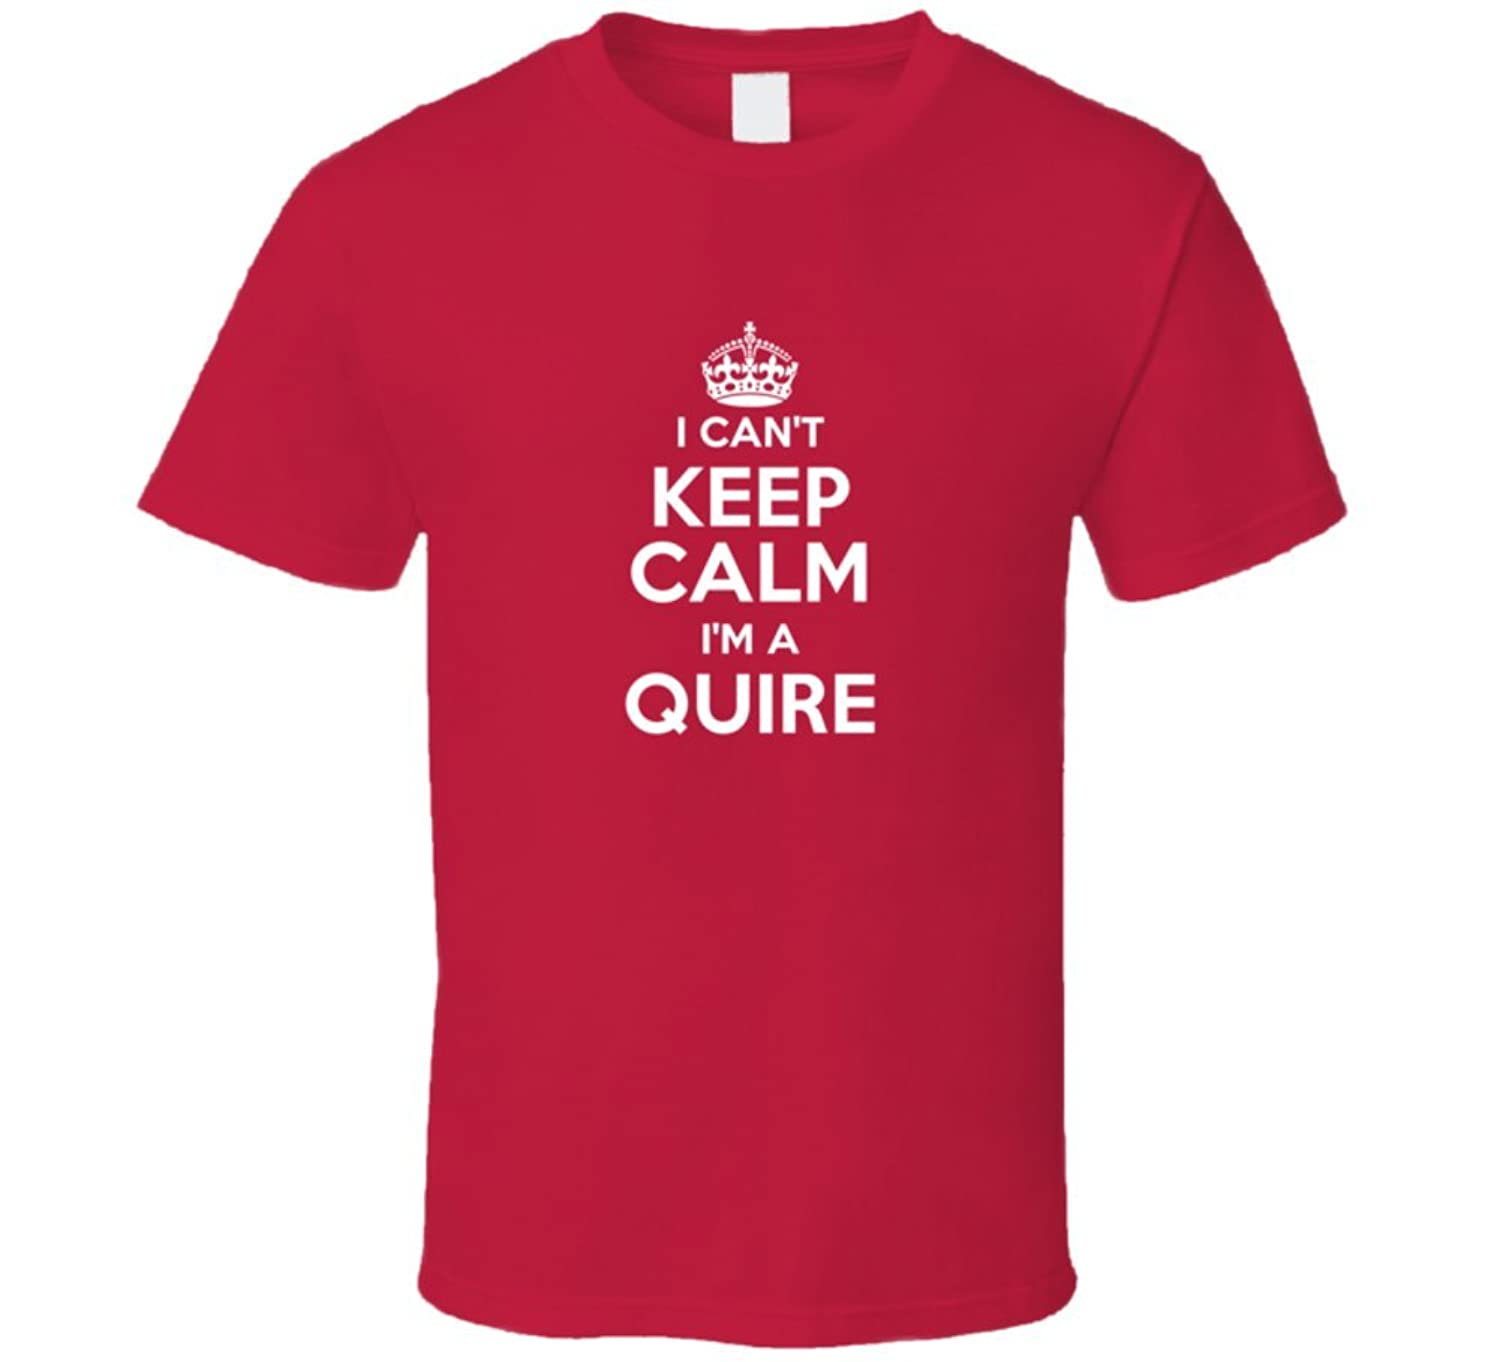 Quire I Can't Keep Calm Parody T Shirt idlamp потолочная люстра idlamp deborah 863 5pf oldbronze